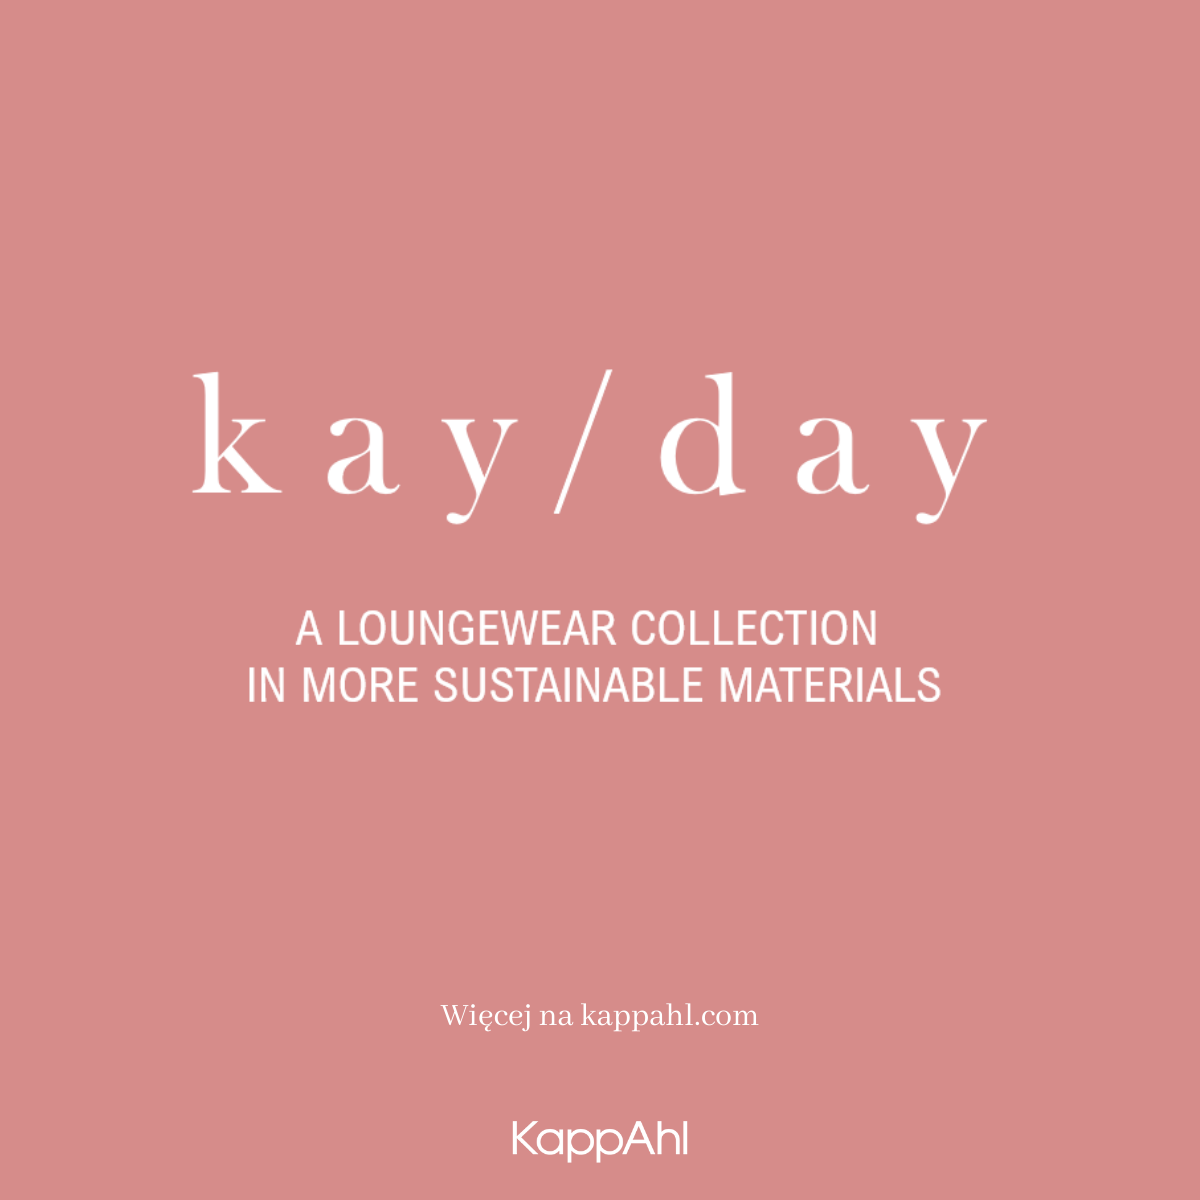 kay/day KappAhl